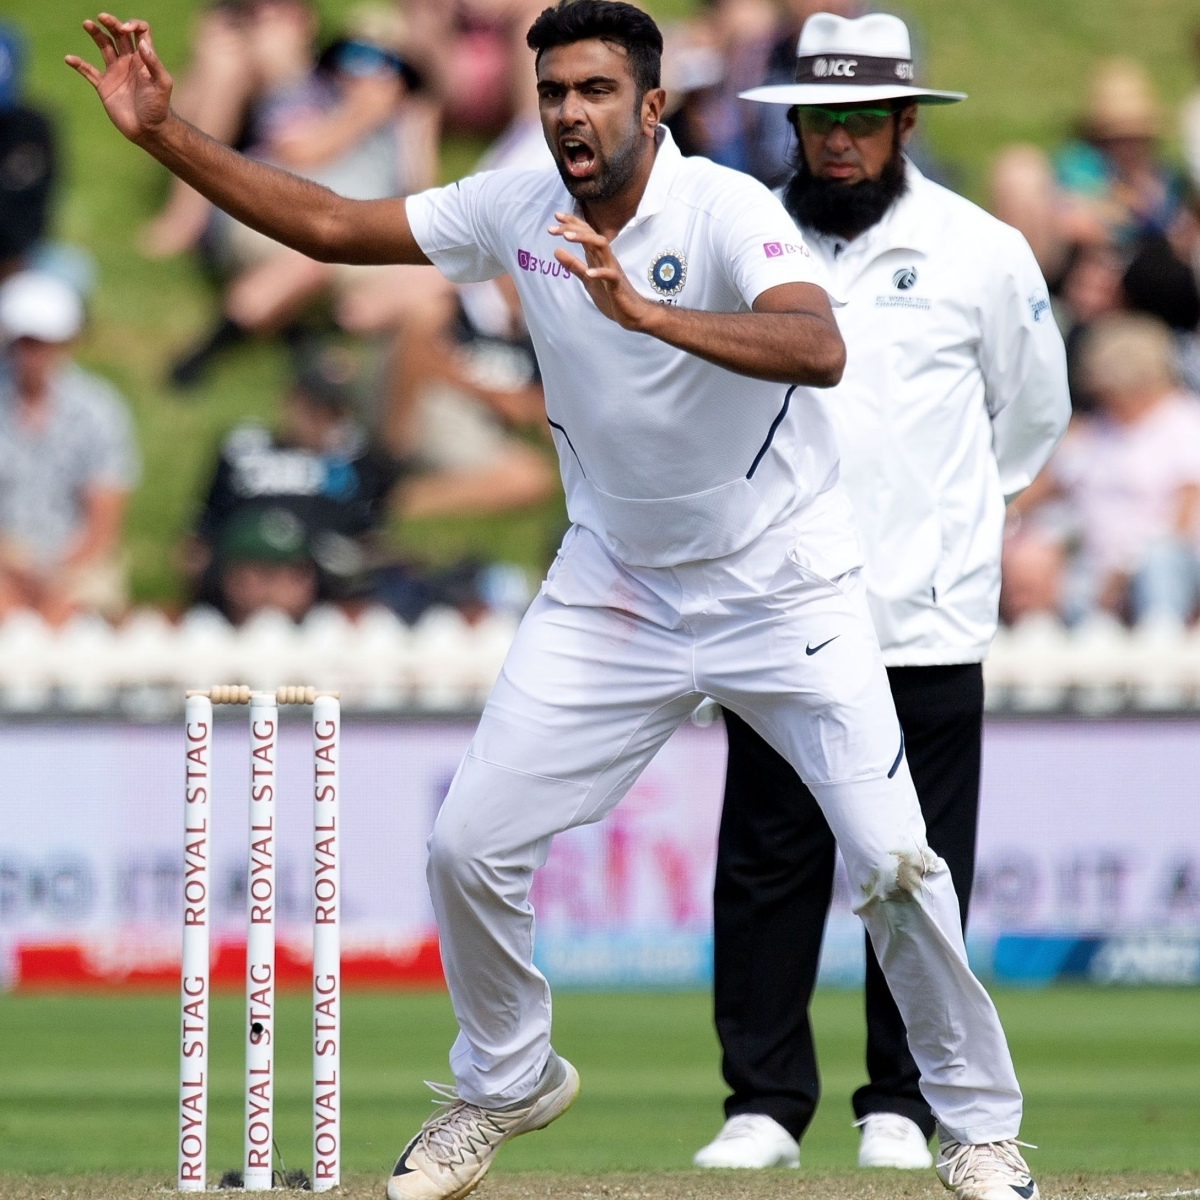 'Thought it was a fortress': R Ashwin trolls 'Gabba hype' after India's win in 4th Test against Australia